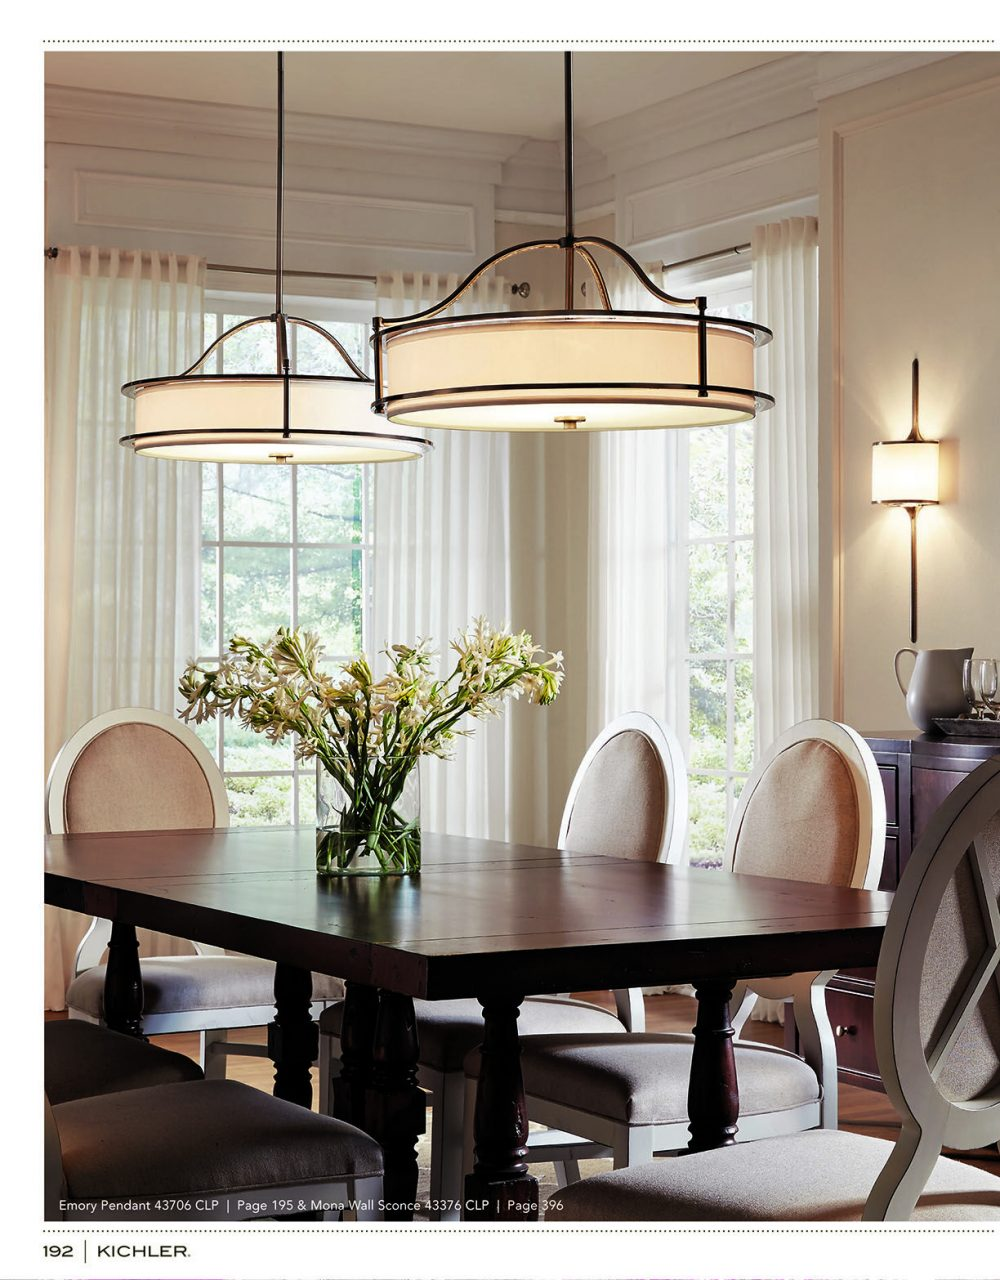 Kichler K116 Source Book Sutton Home Dining Room Light Fixtures